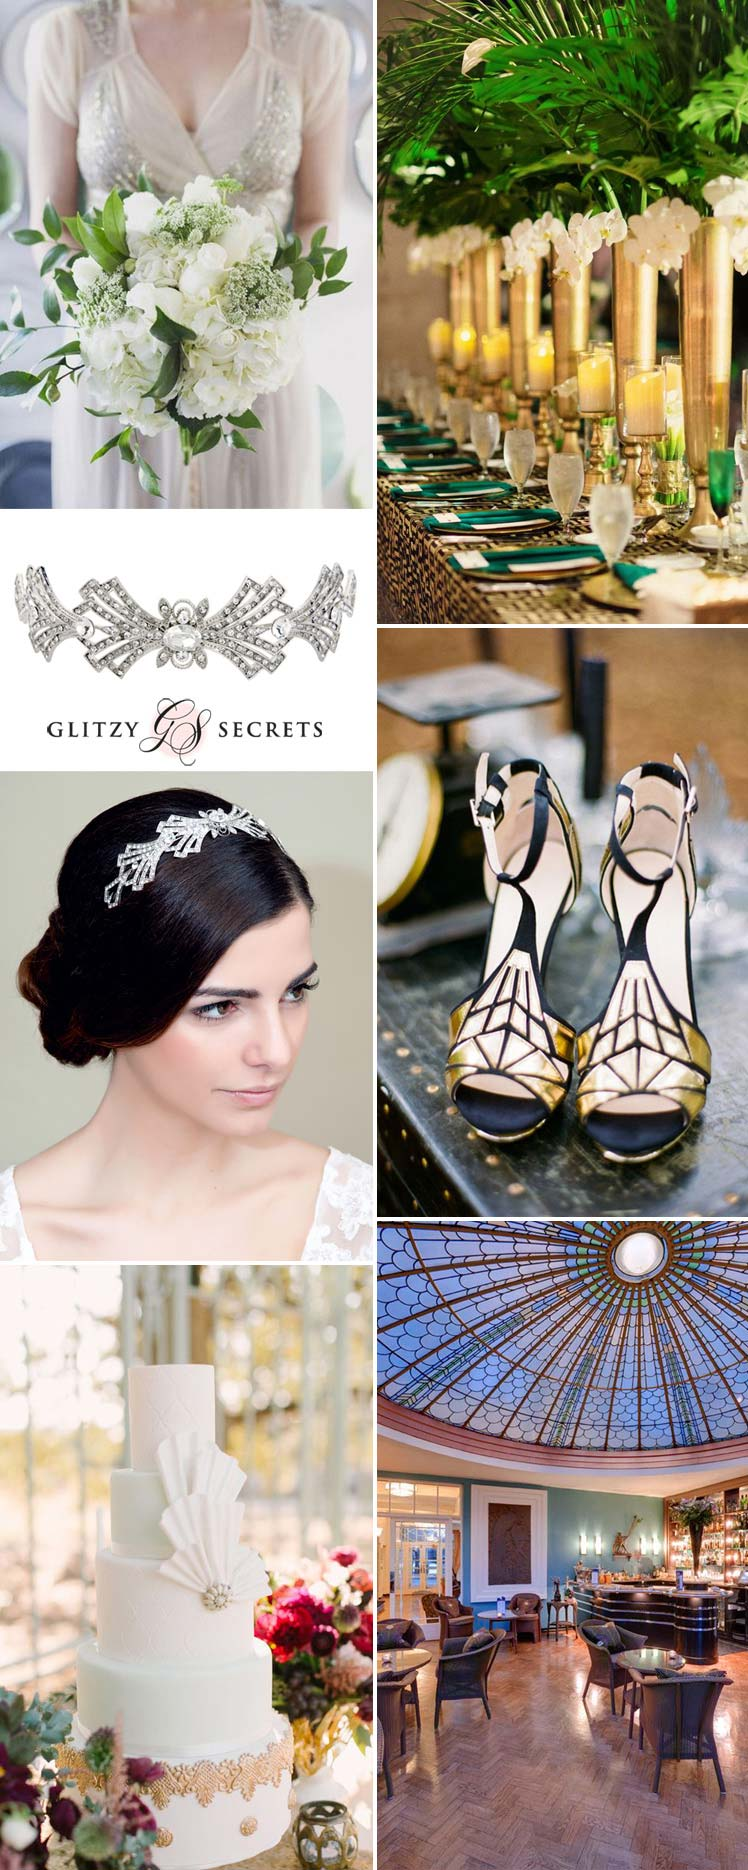 Vintage Art Deco inspiration for your wedding theme